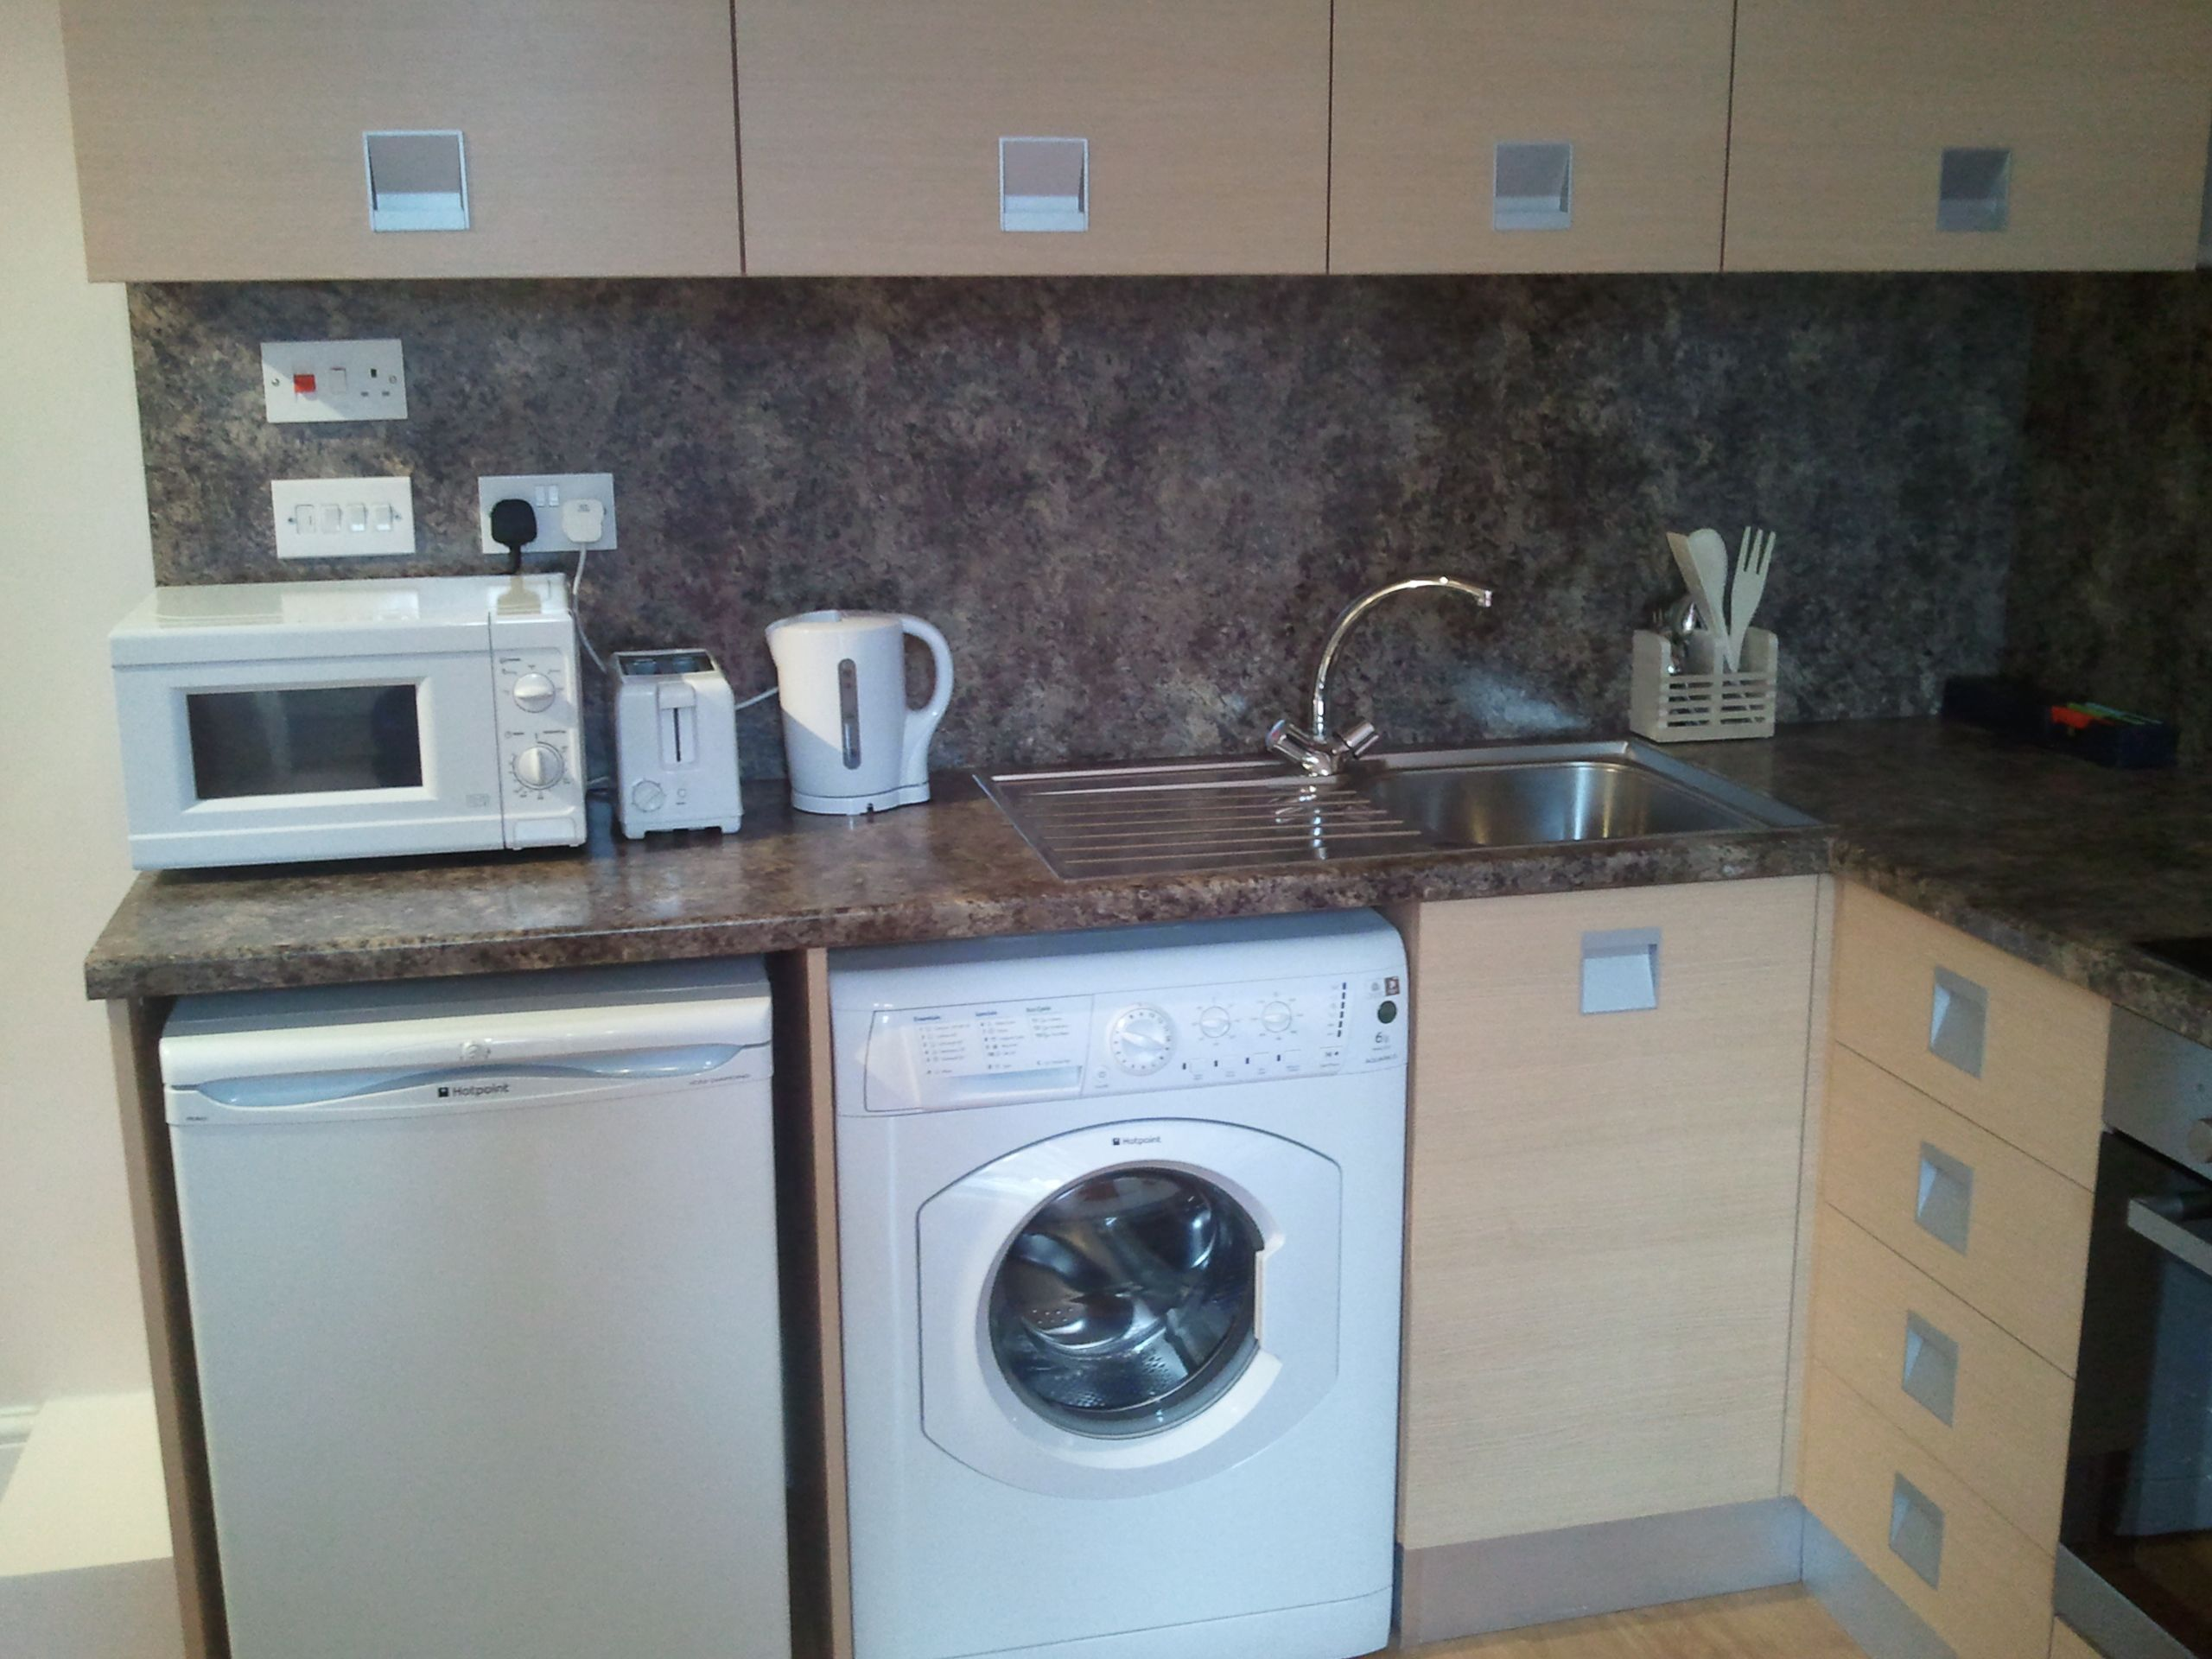 London apartments and holiday flats for rent, budget accommodation www.shortlet-london.com